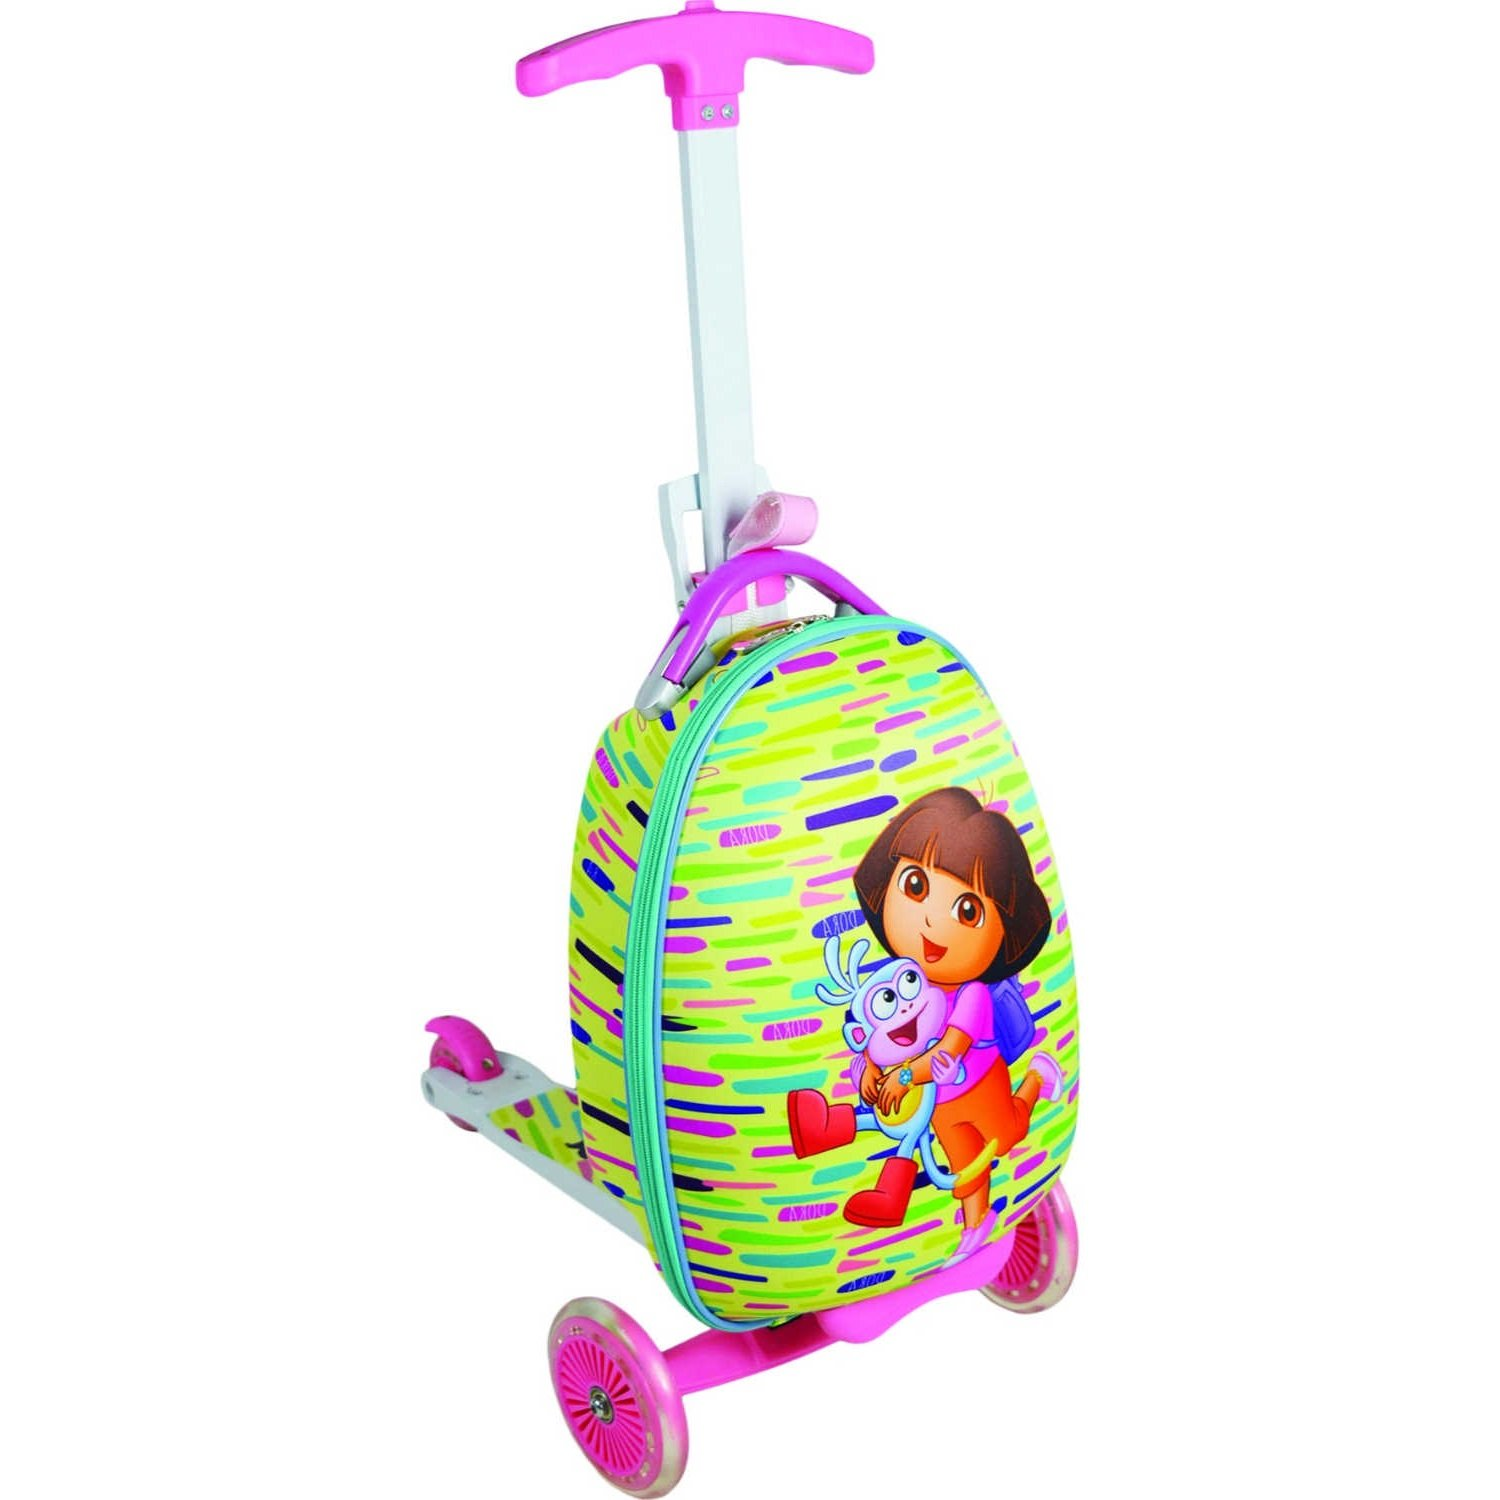 Dora The Explorer And Boots Pattern Scootie Ride On Spinner Lightweight Luggage, Adventurer Fun Friends Themed, Hardsided, Checkpoint Friendly, Kids Handle Hard Travel Case, Pink, Mint, Size 110 Lbs